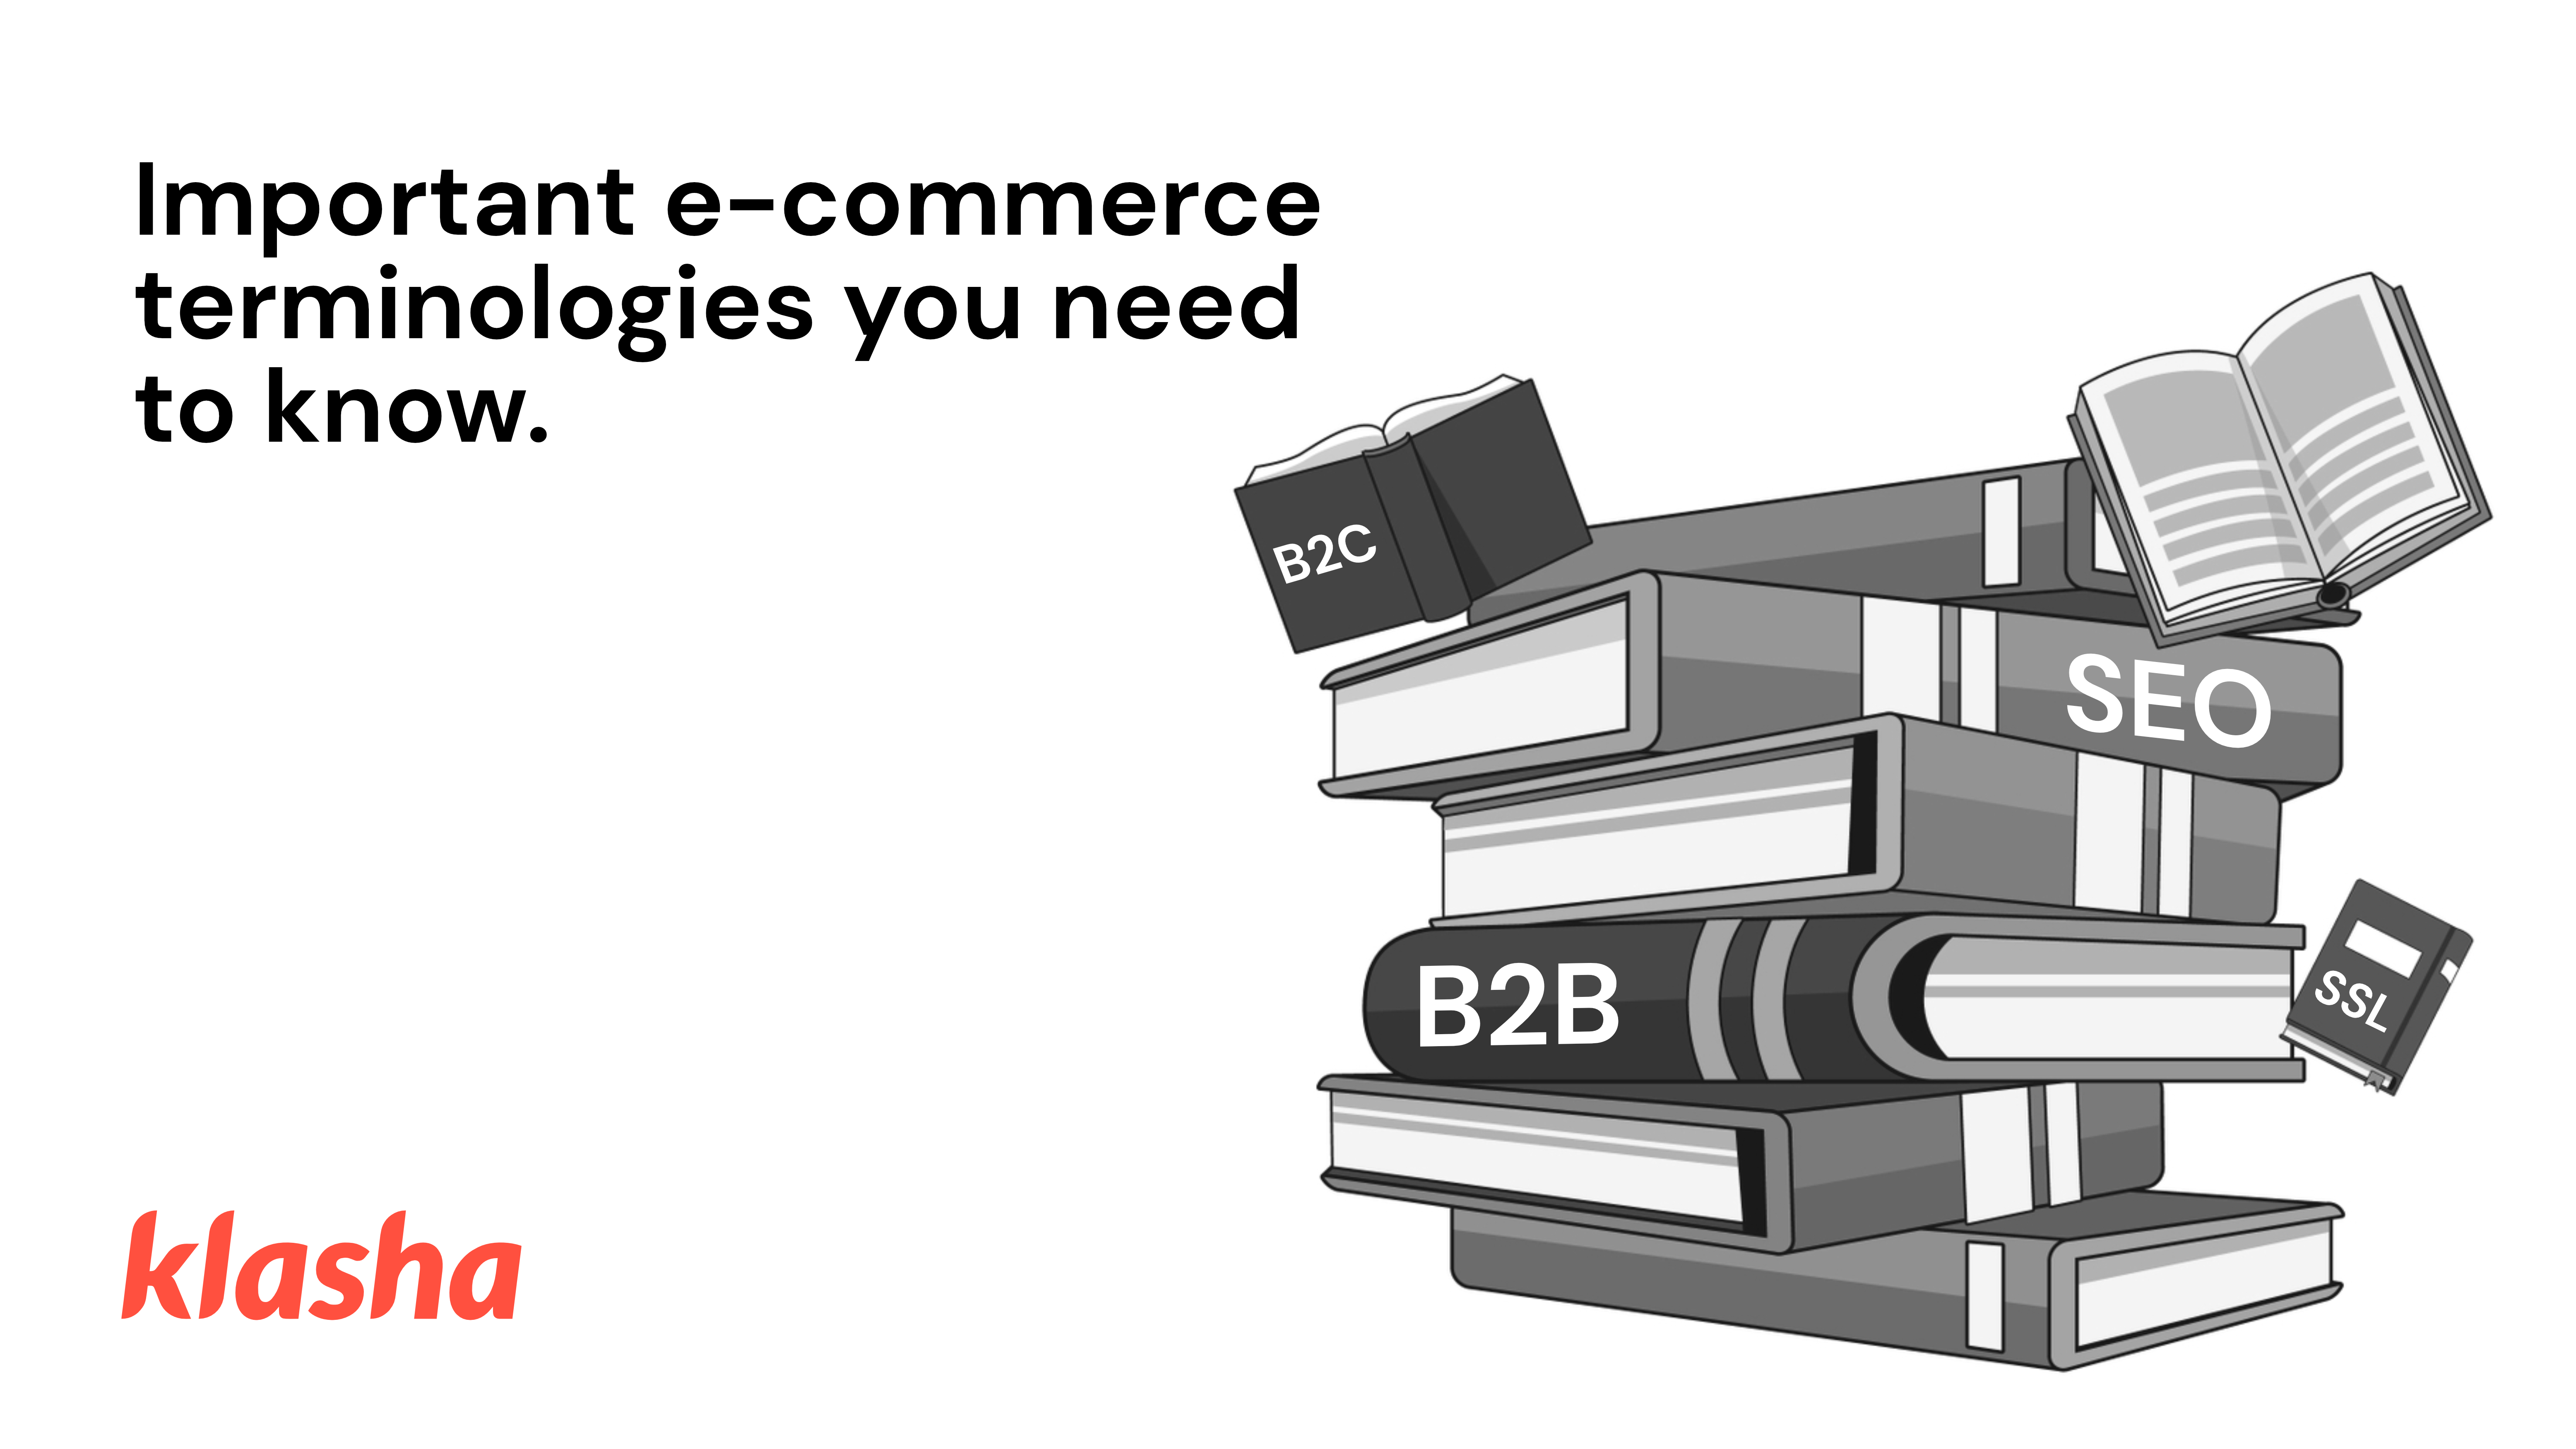 Important e-commerce terminologies you need to know